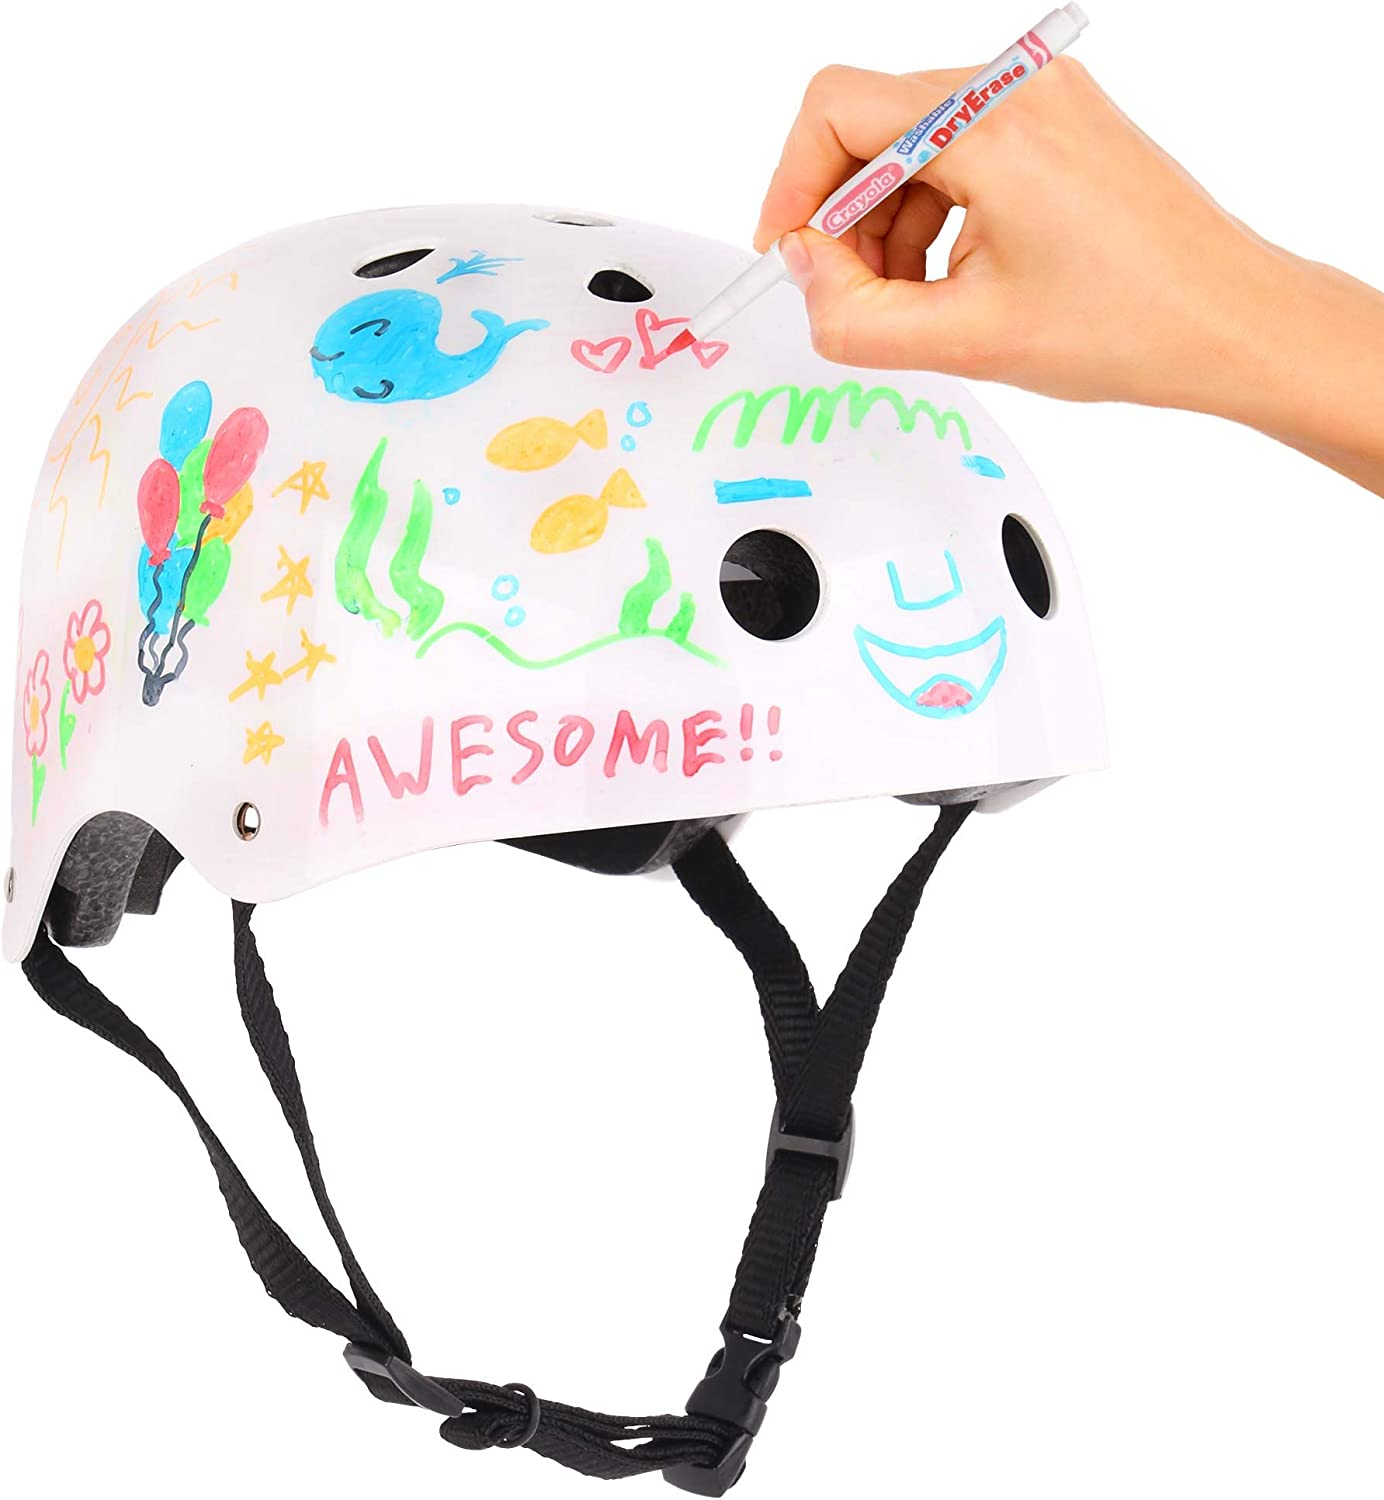 Dry Erase Surface Ages 5+ 11 Vents For Multi-sports Bike Scooter Roller Skate Crayola Kids Bike Helmet For Bike Scooter Skate Markers Included Shock Absorbent EPS Inner Shell CPSC ASTM Certified